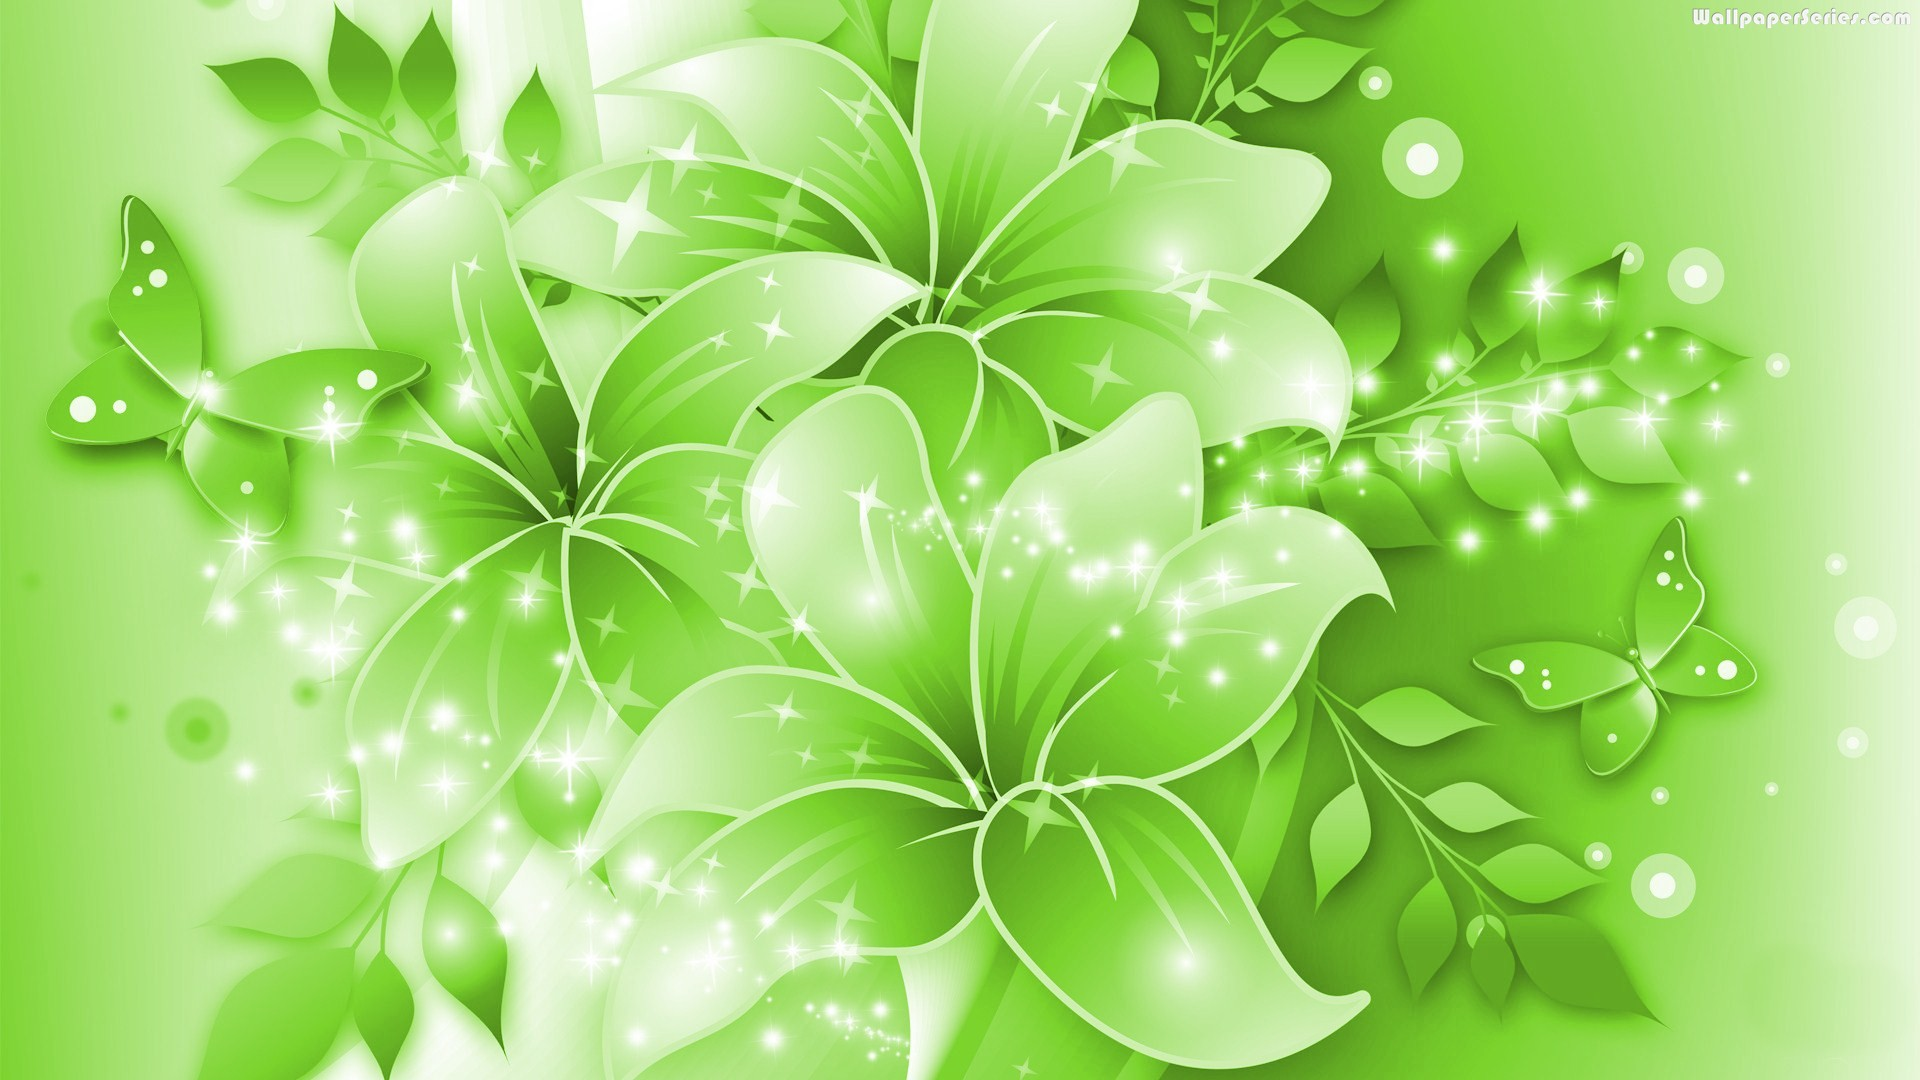 Green floral background photo